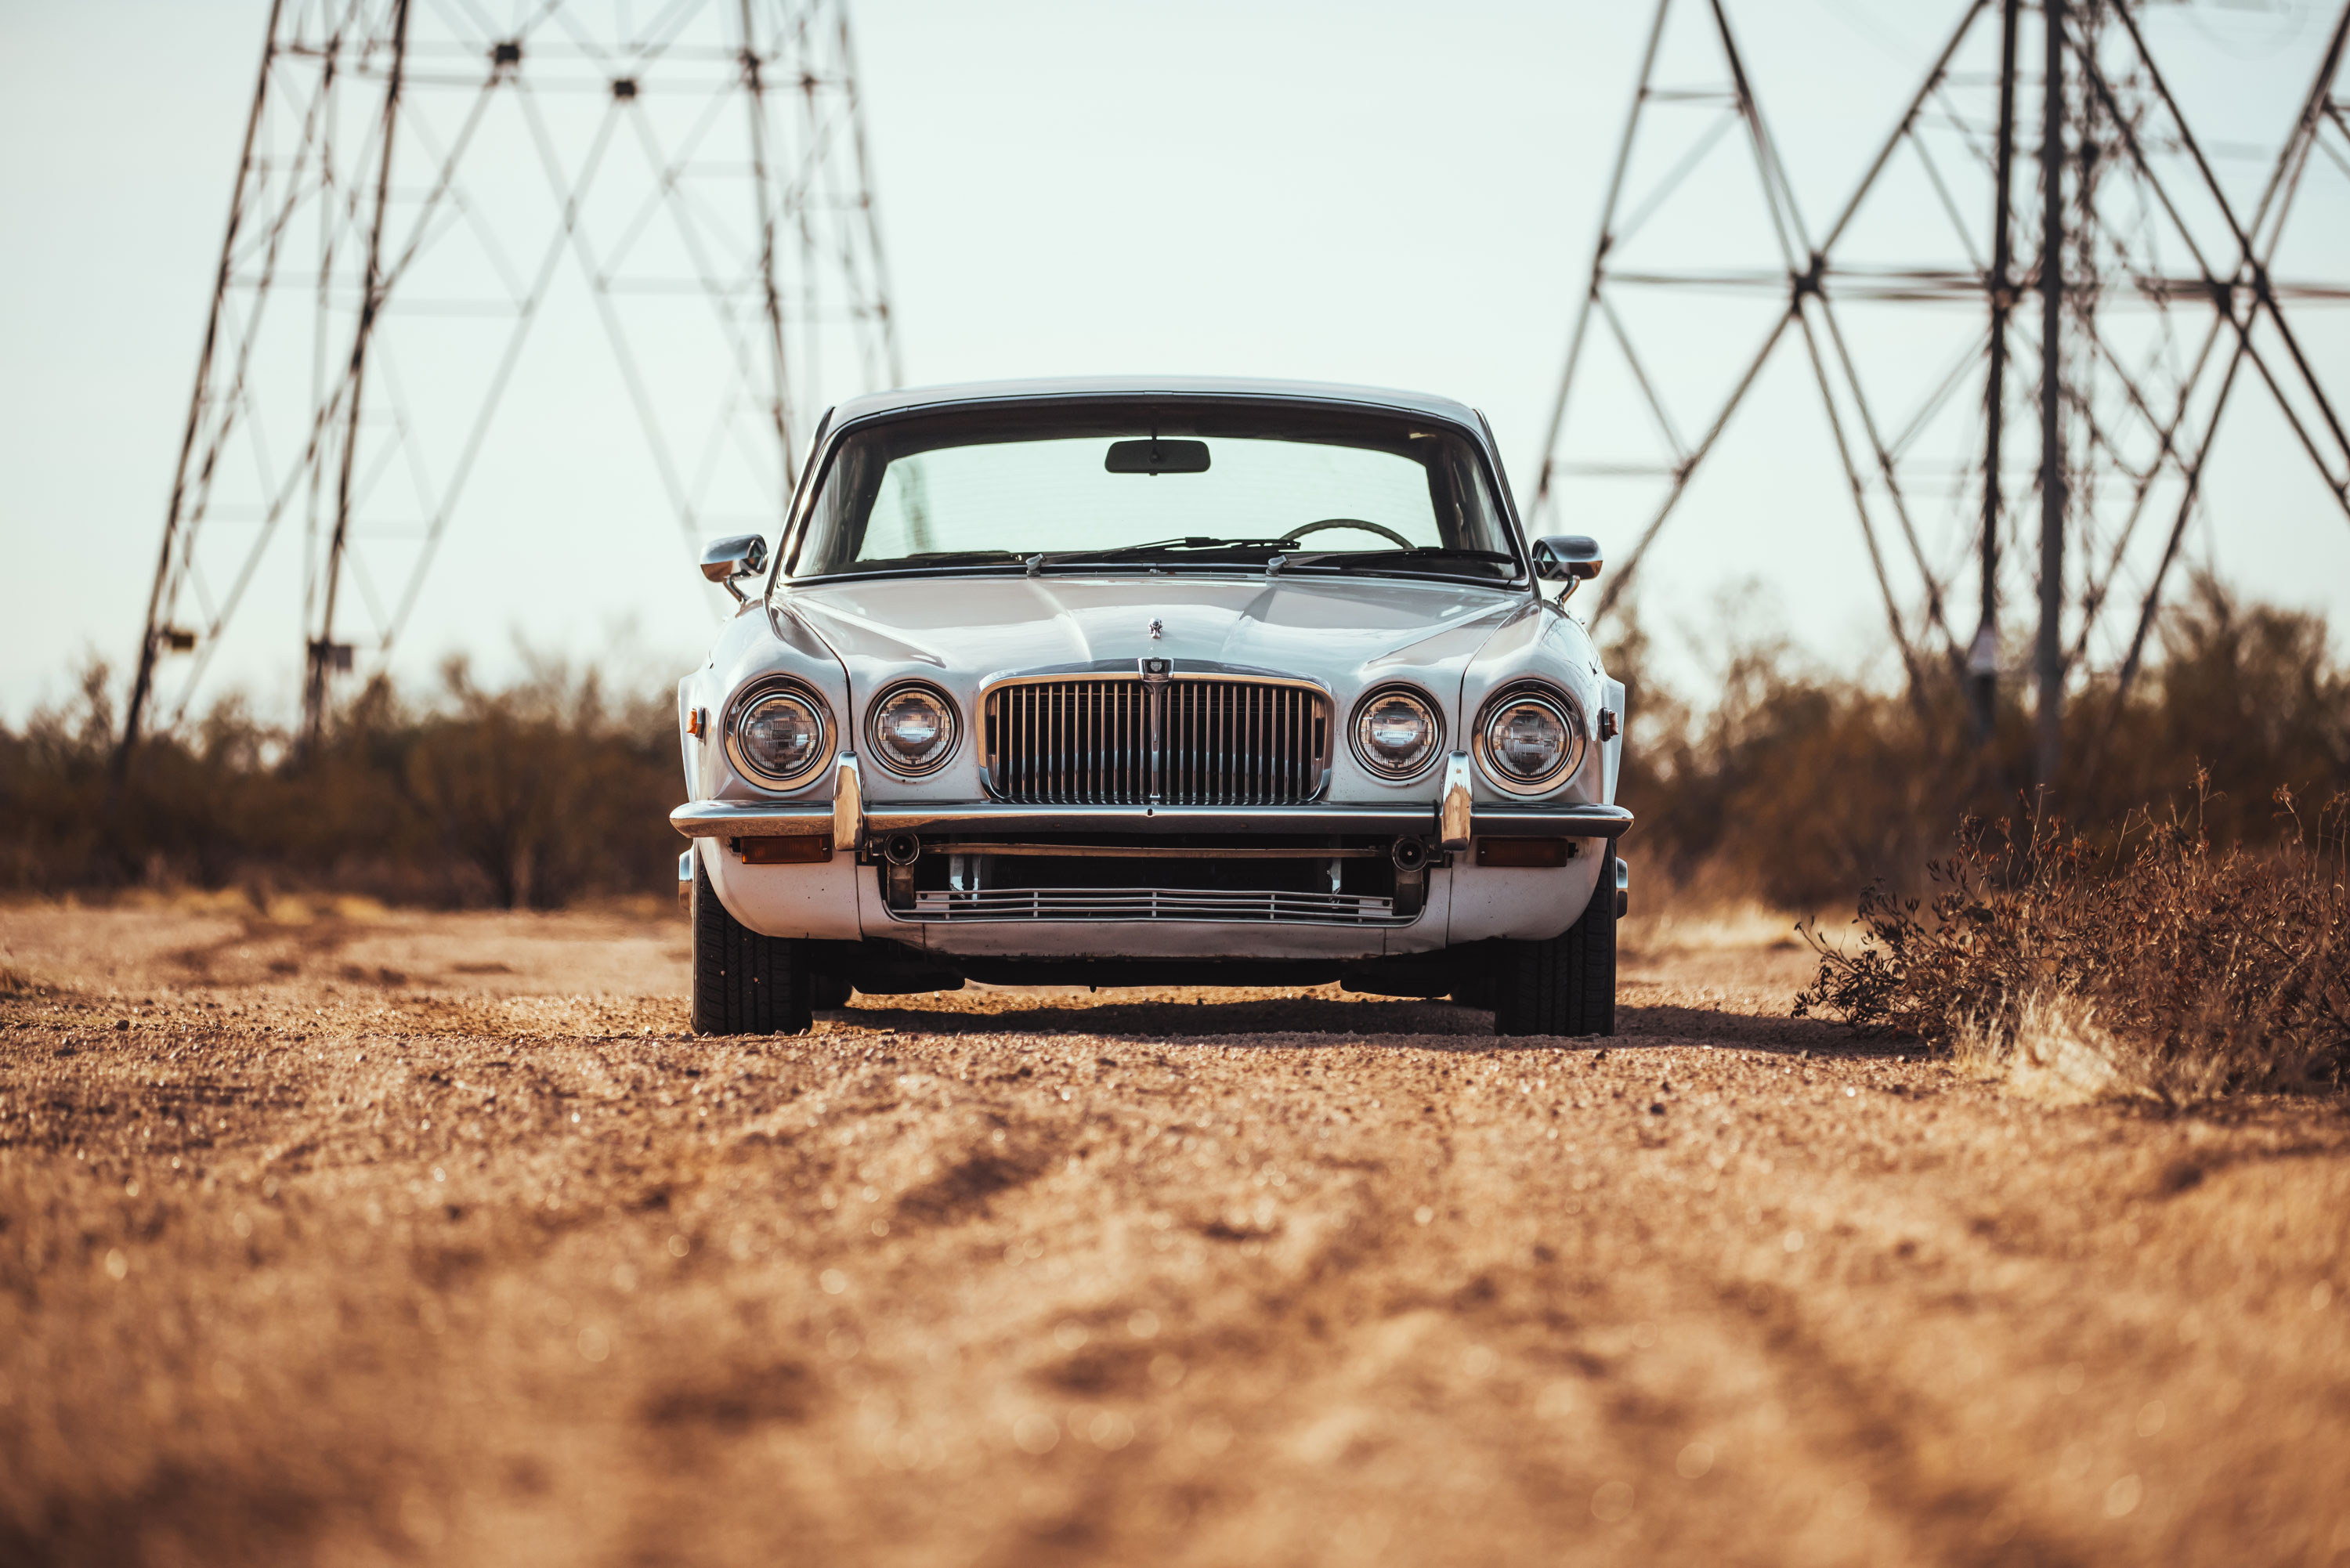 1974 Jaguar XJ6 dead on